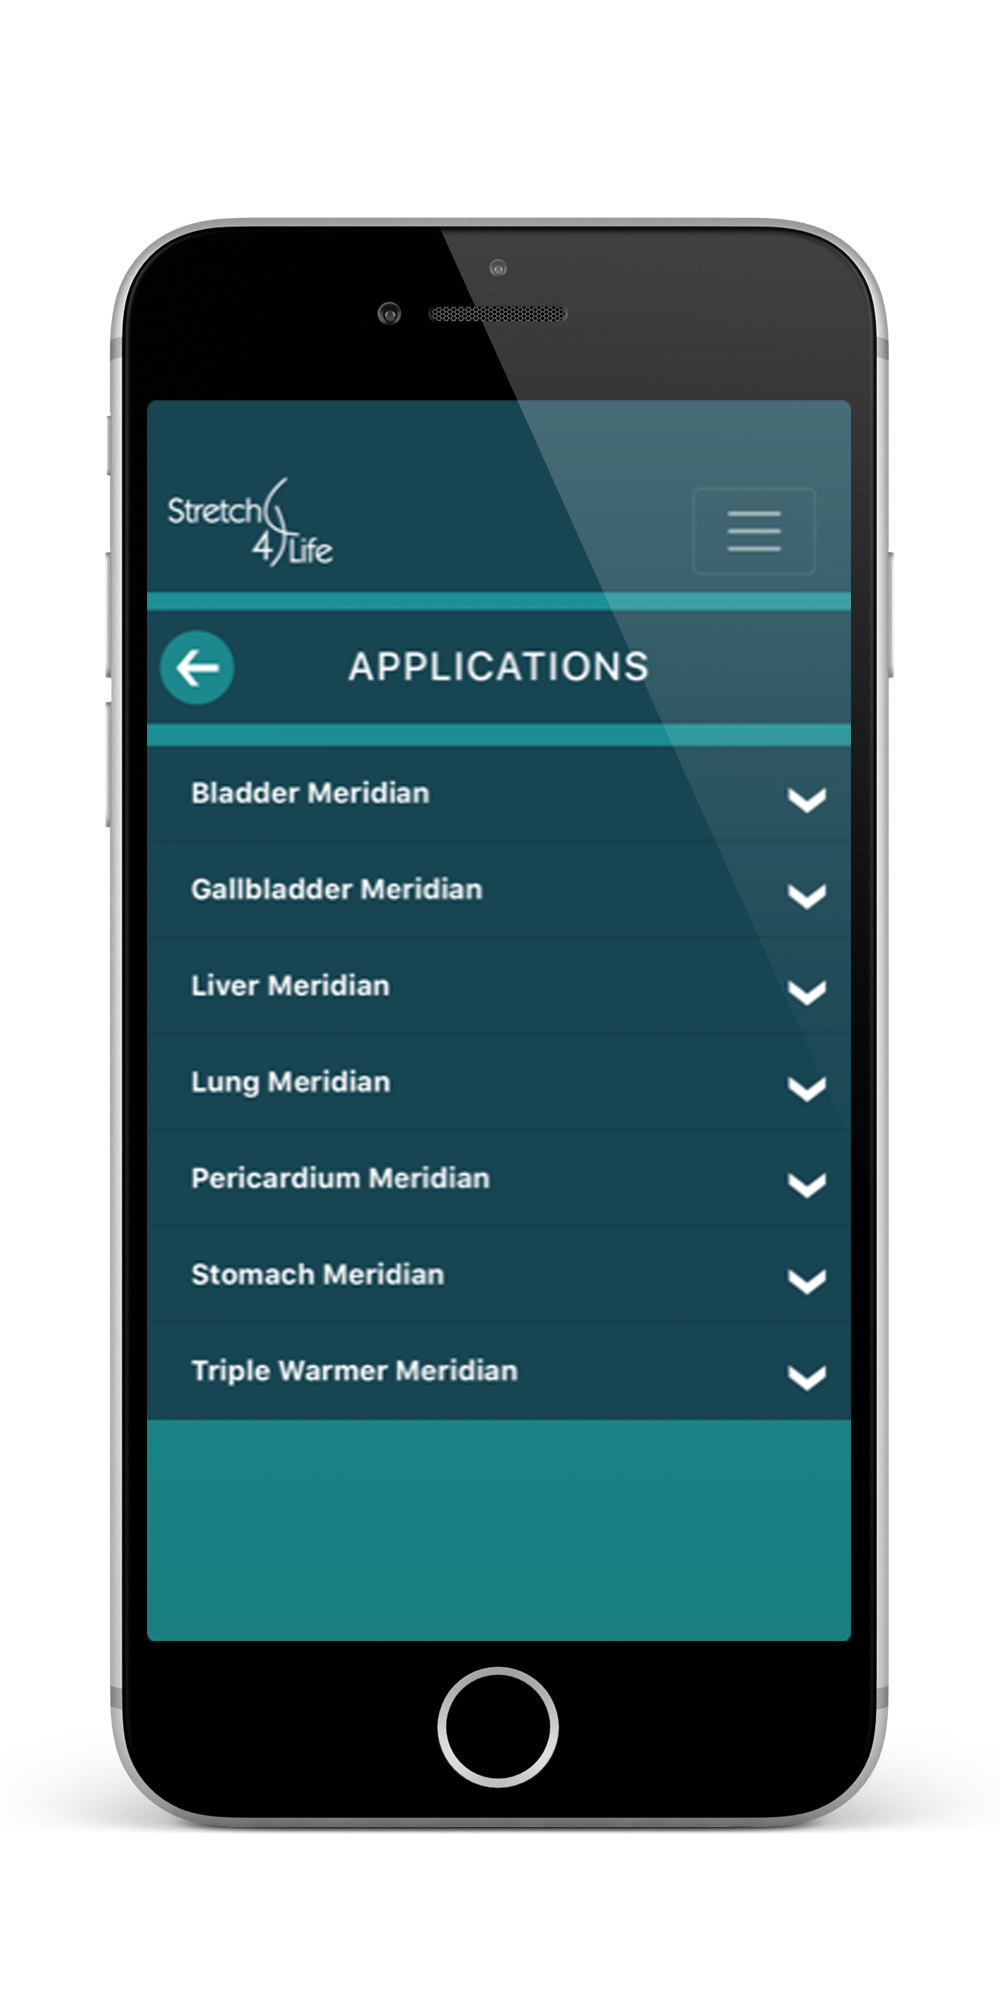 Stretch4Life Applications from the Stretch4Life App